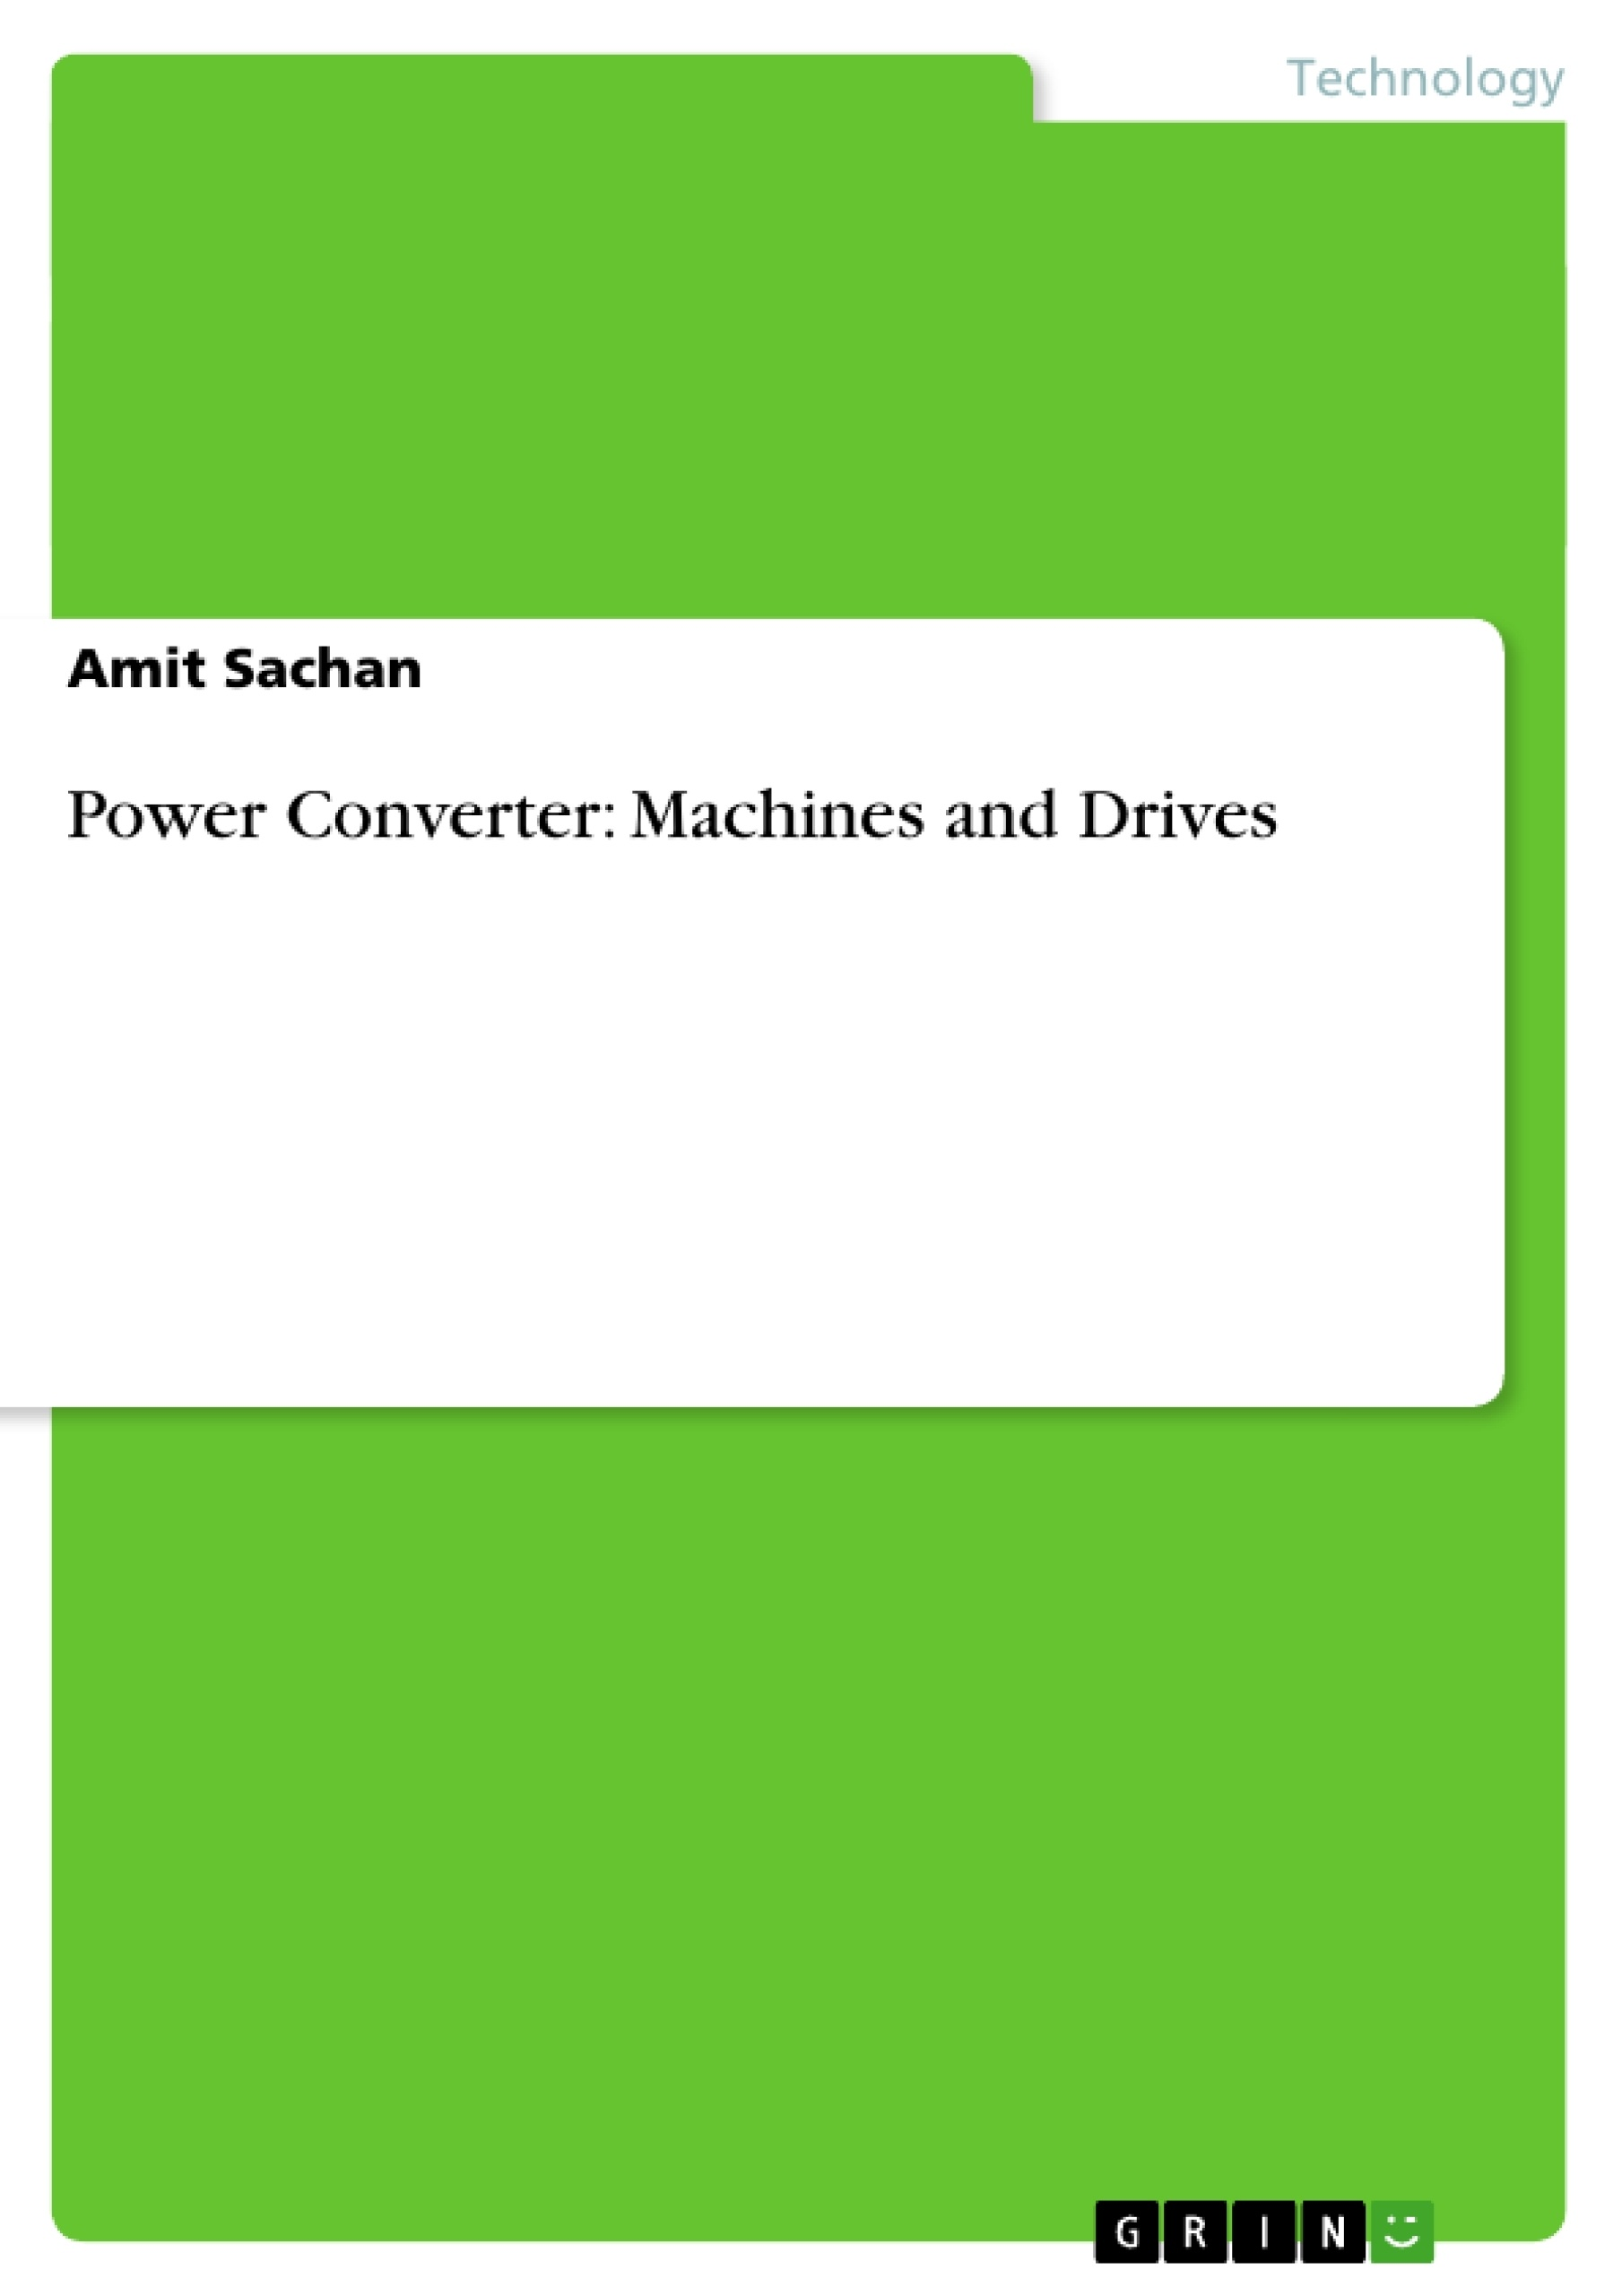 Title: Power Converter: Machines and Drives